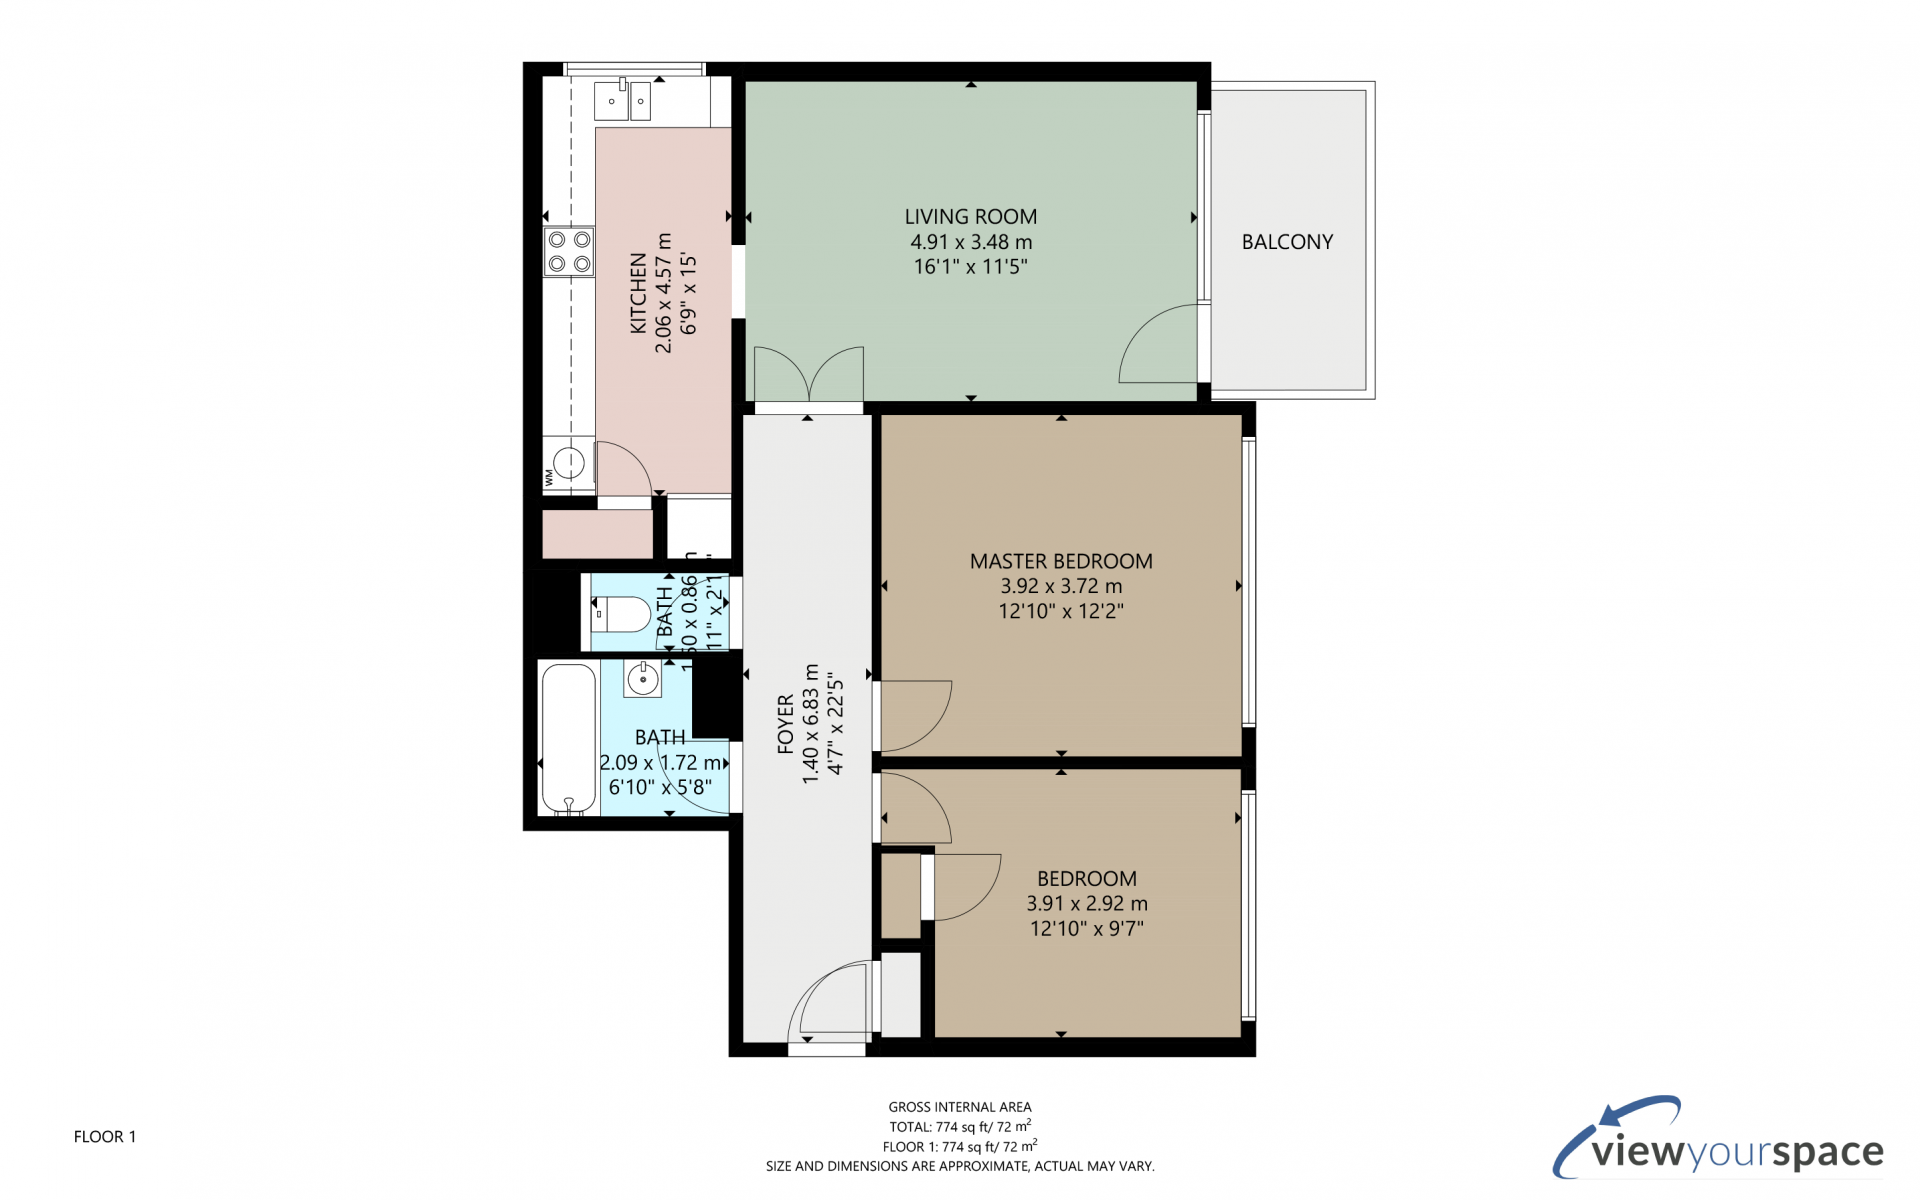 Floor plan of Masefield Serviced Apartment, Centre, Brentwood